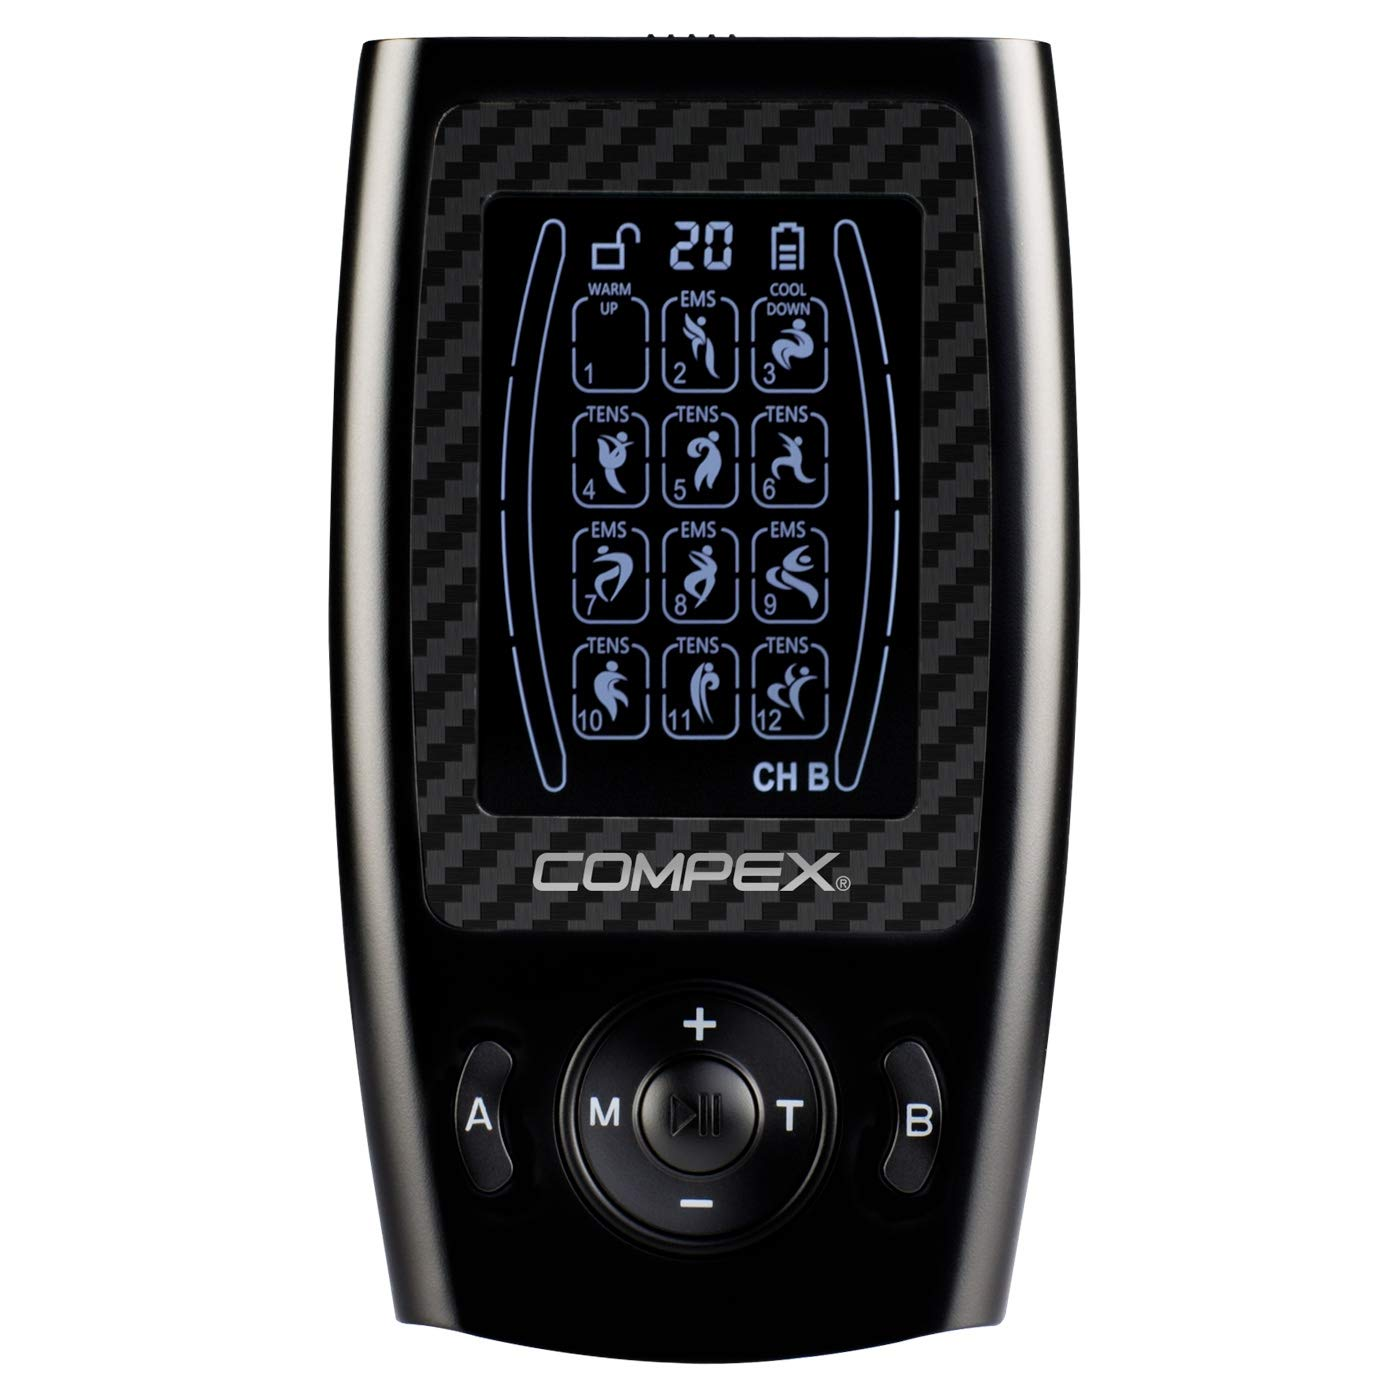 COMPEX LT TENS Unit Portable Rechargeable Handheld Pain Relief & Pain Management Therapy Device by Compex